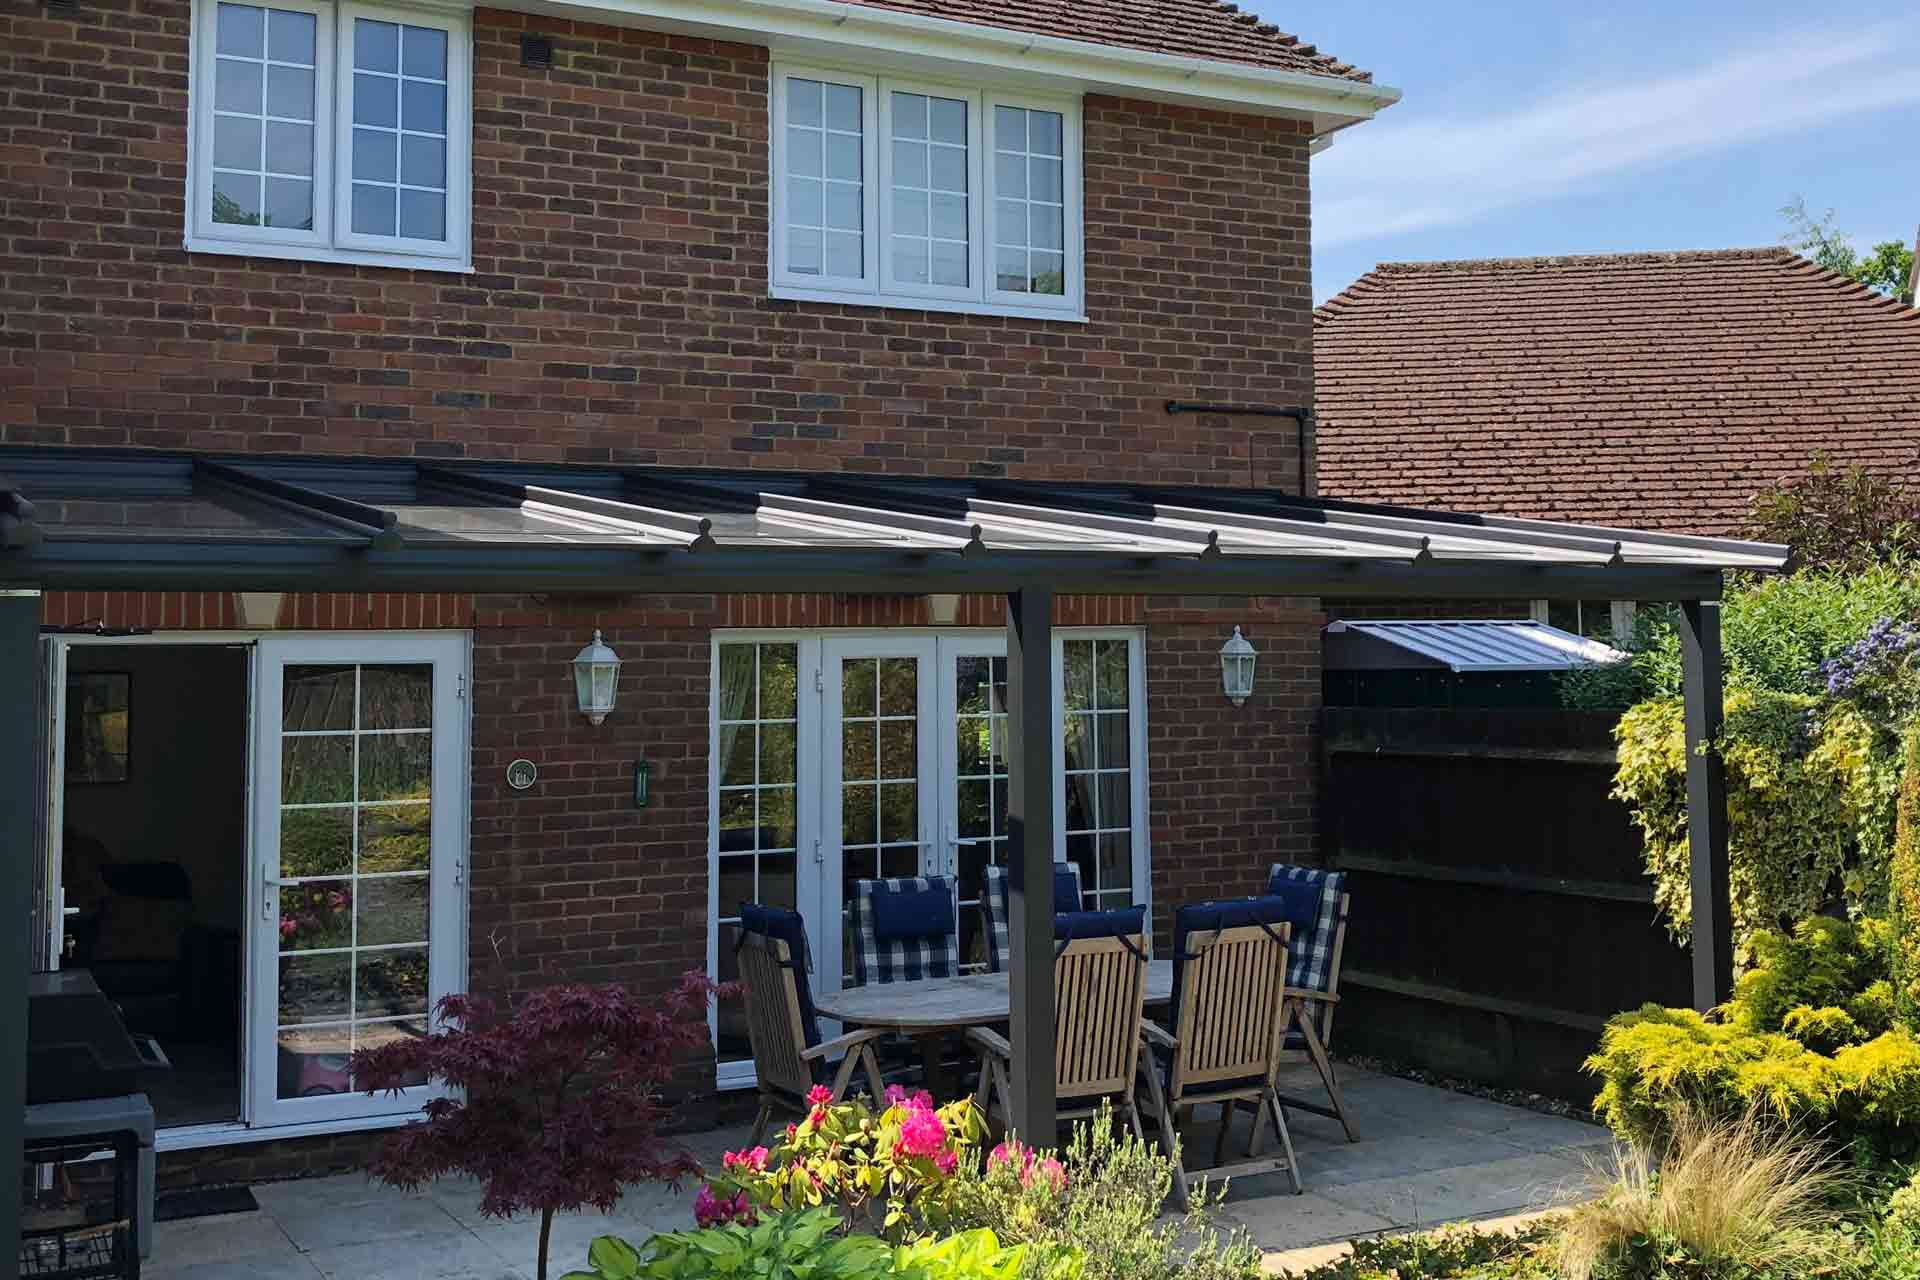 A veranda for outside cooking and dining in Basingstoke